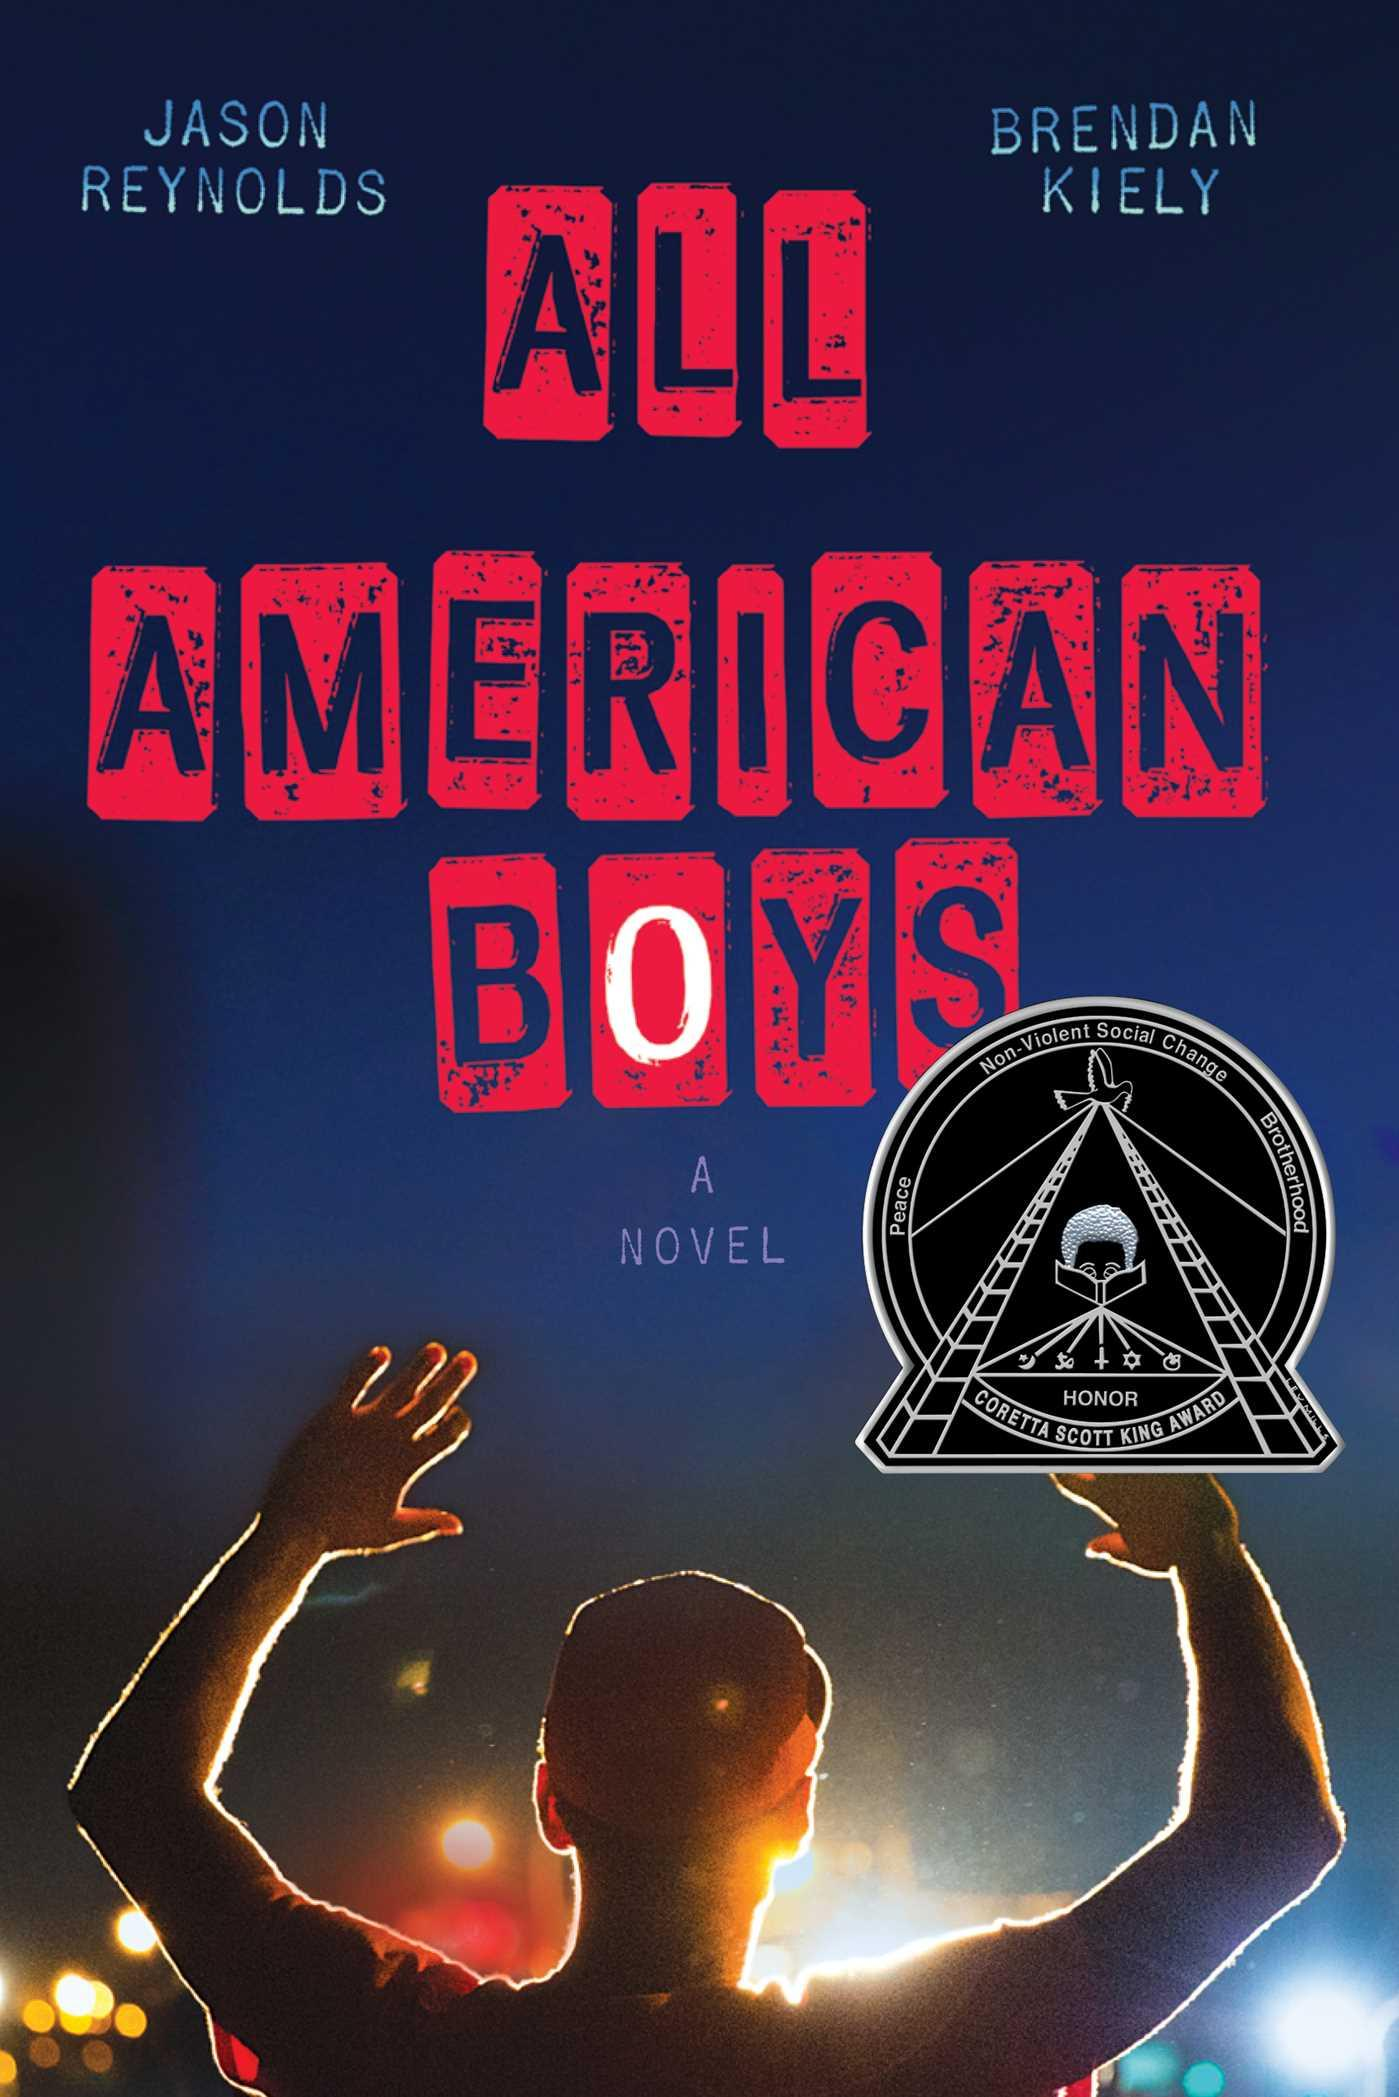 All American Boys bookcover